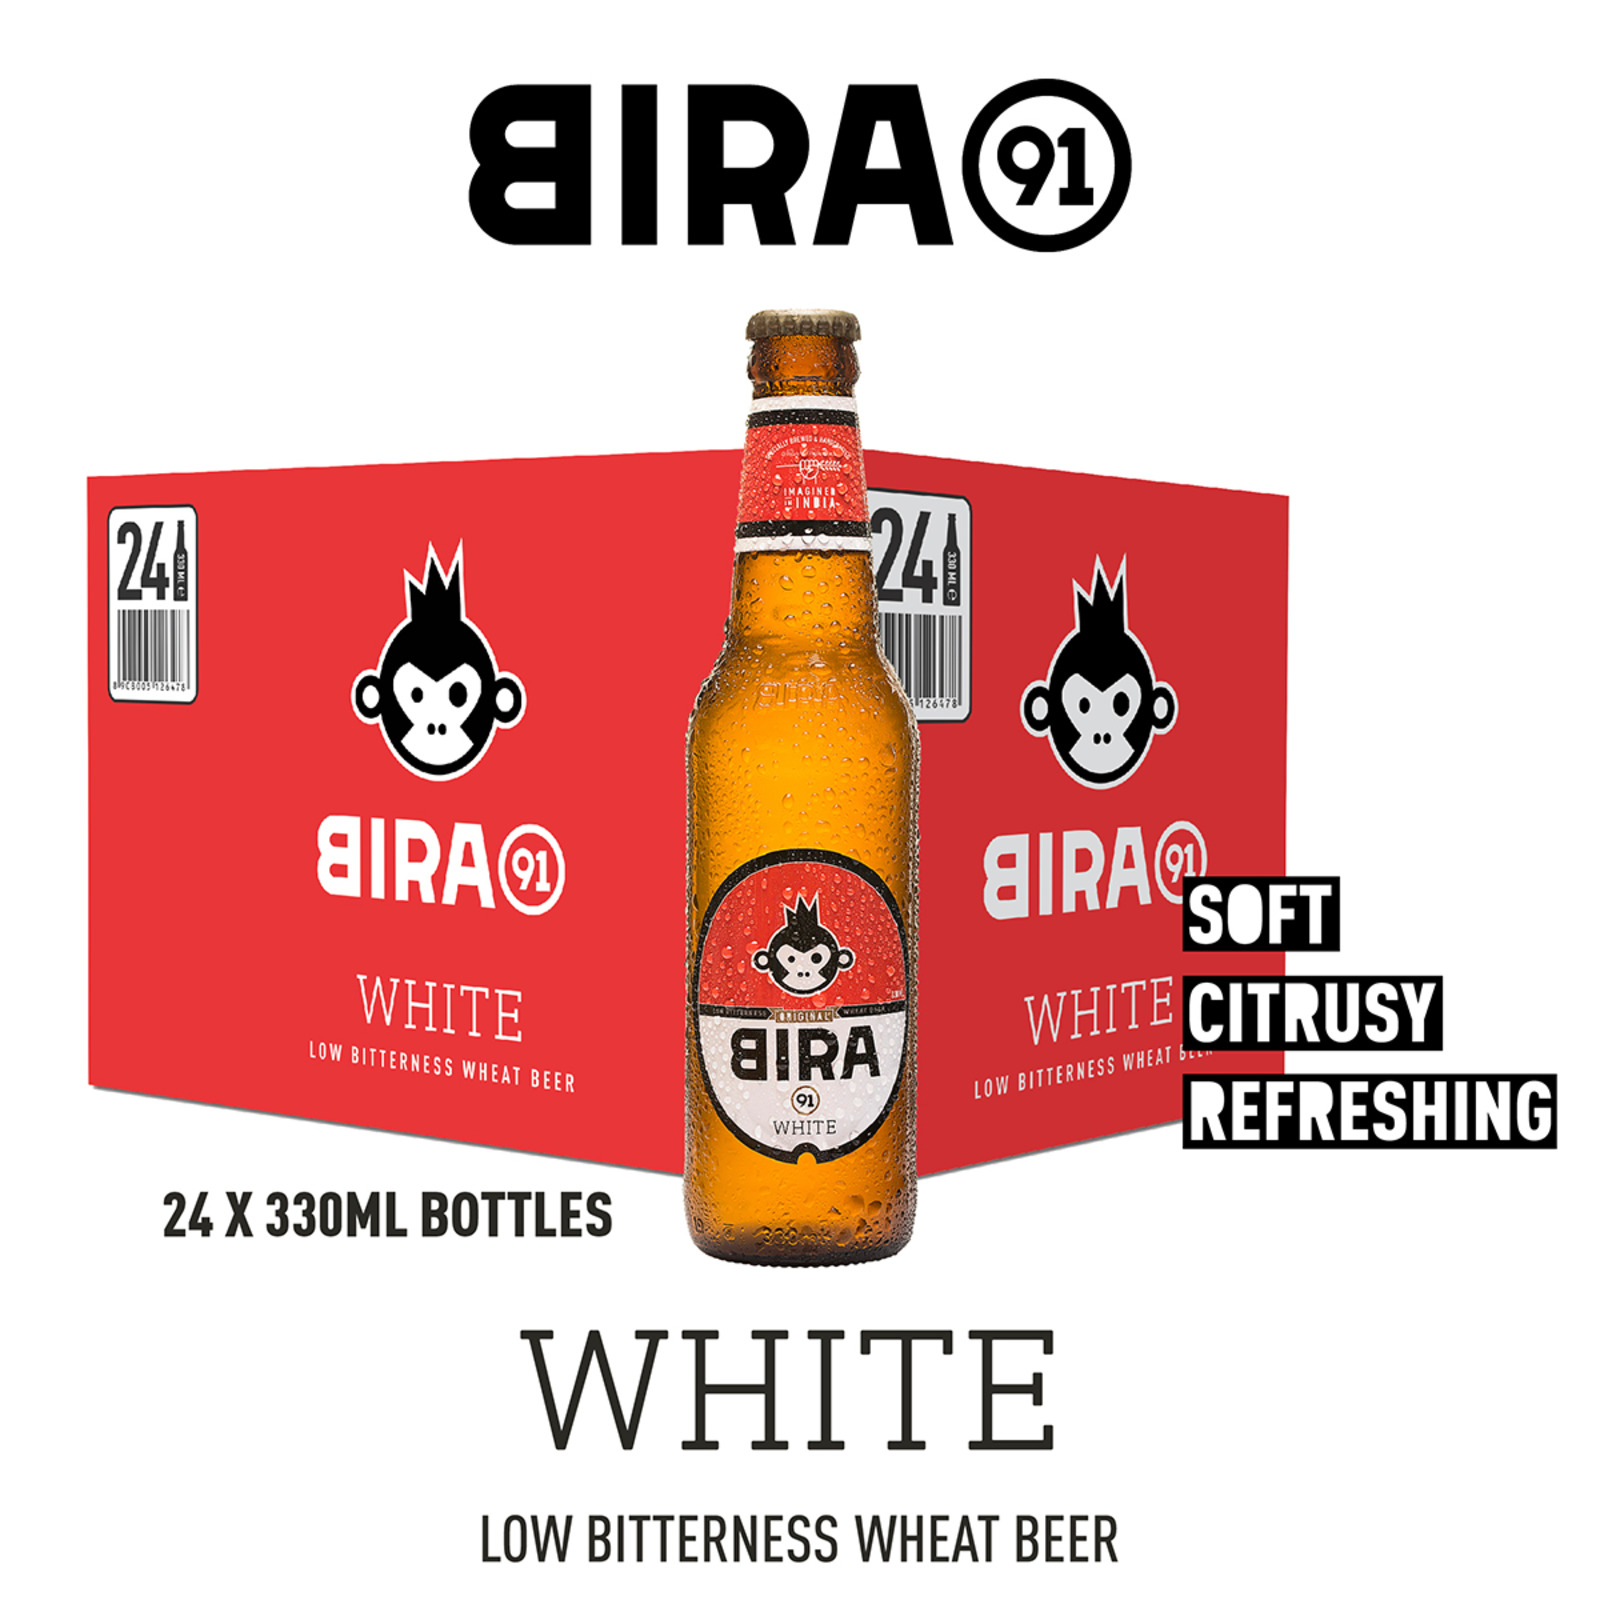 Bira 91 White Beer 4.7% Bottle - Case